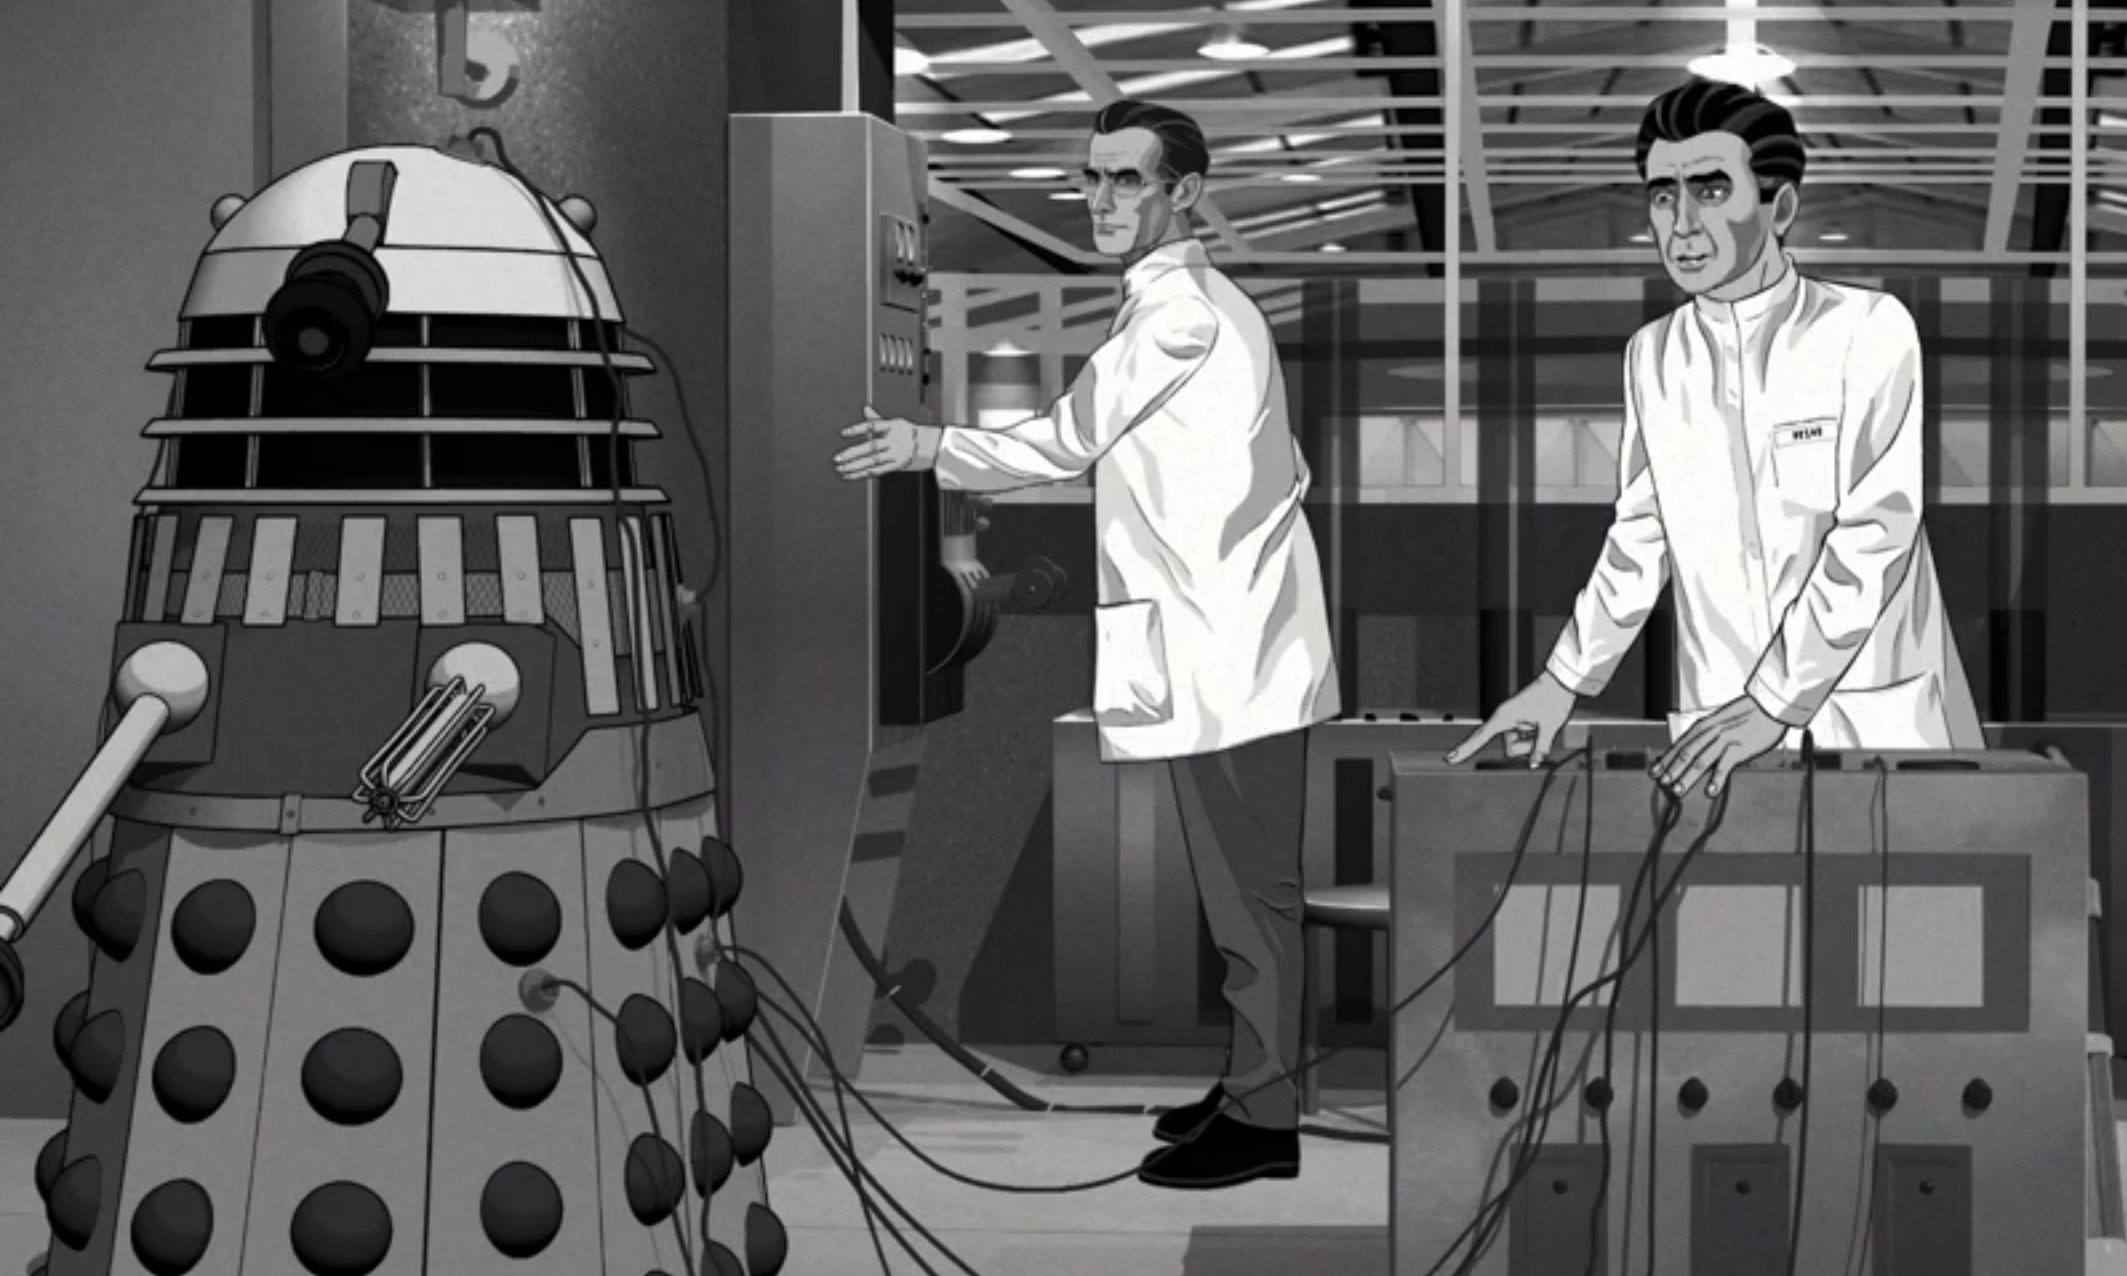 Robert James, as Lesterson (centre), experimenting on a Dalek